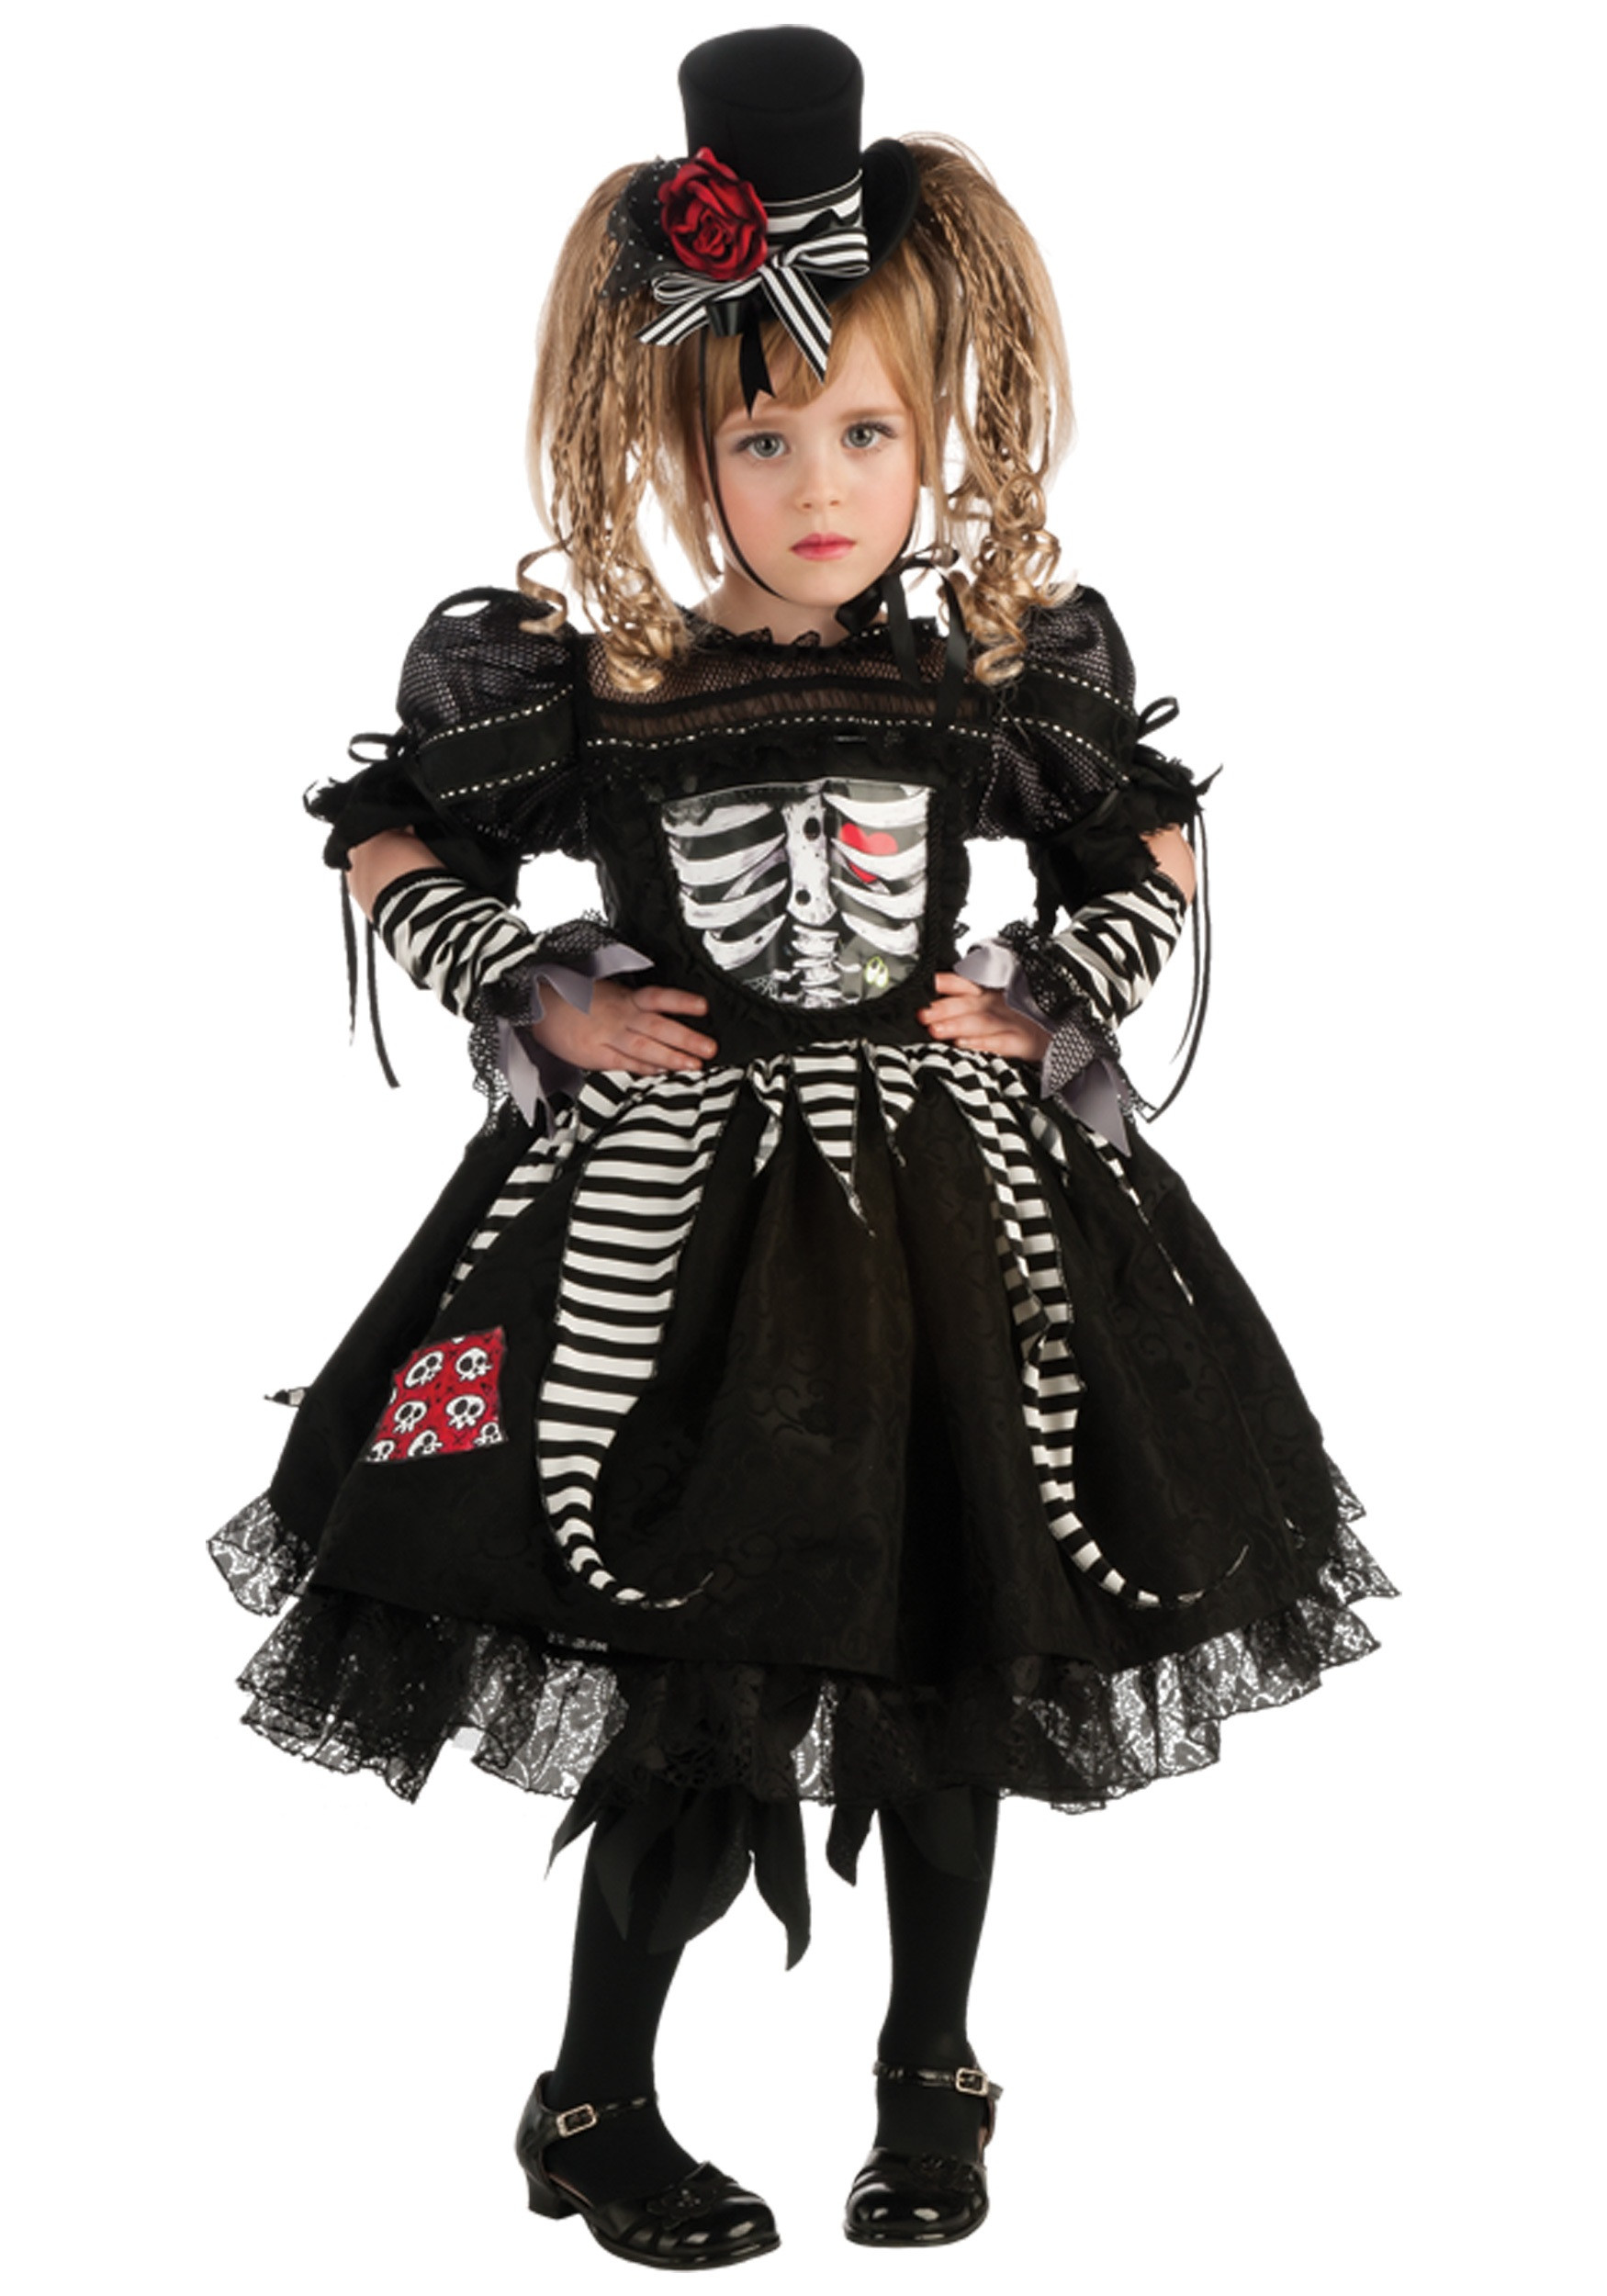 Best ideas about DIY Costumes For Girls . Save or Pin Girls Bones Costume Now.